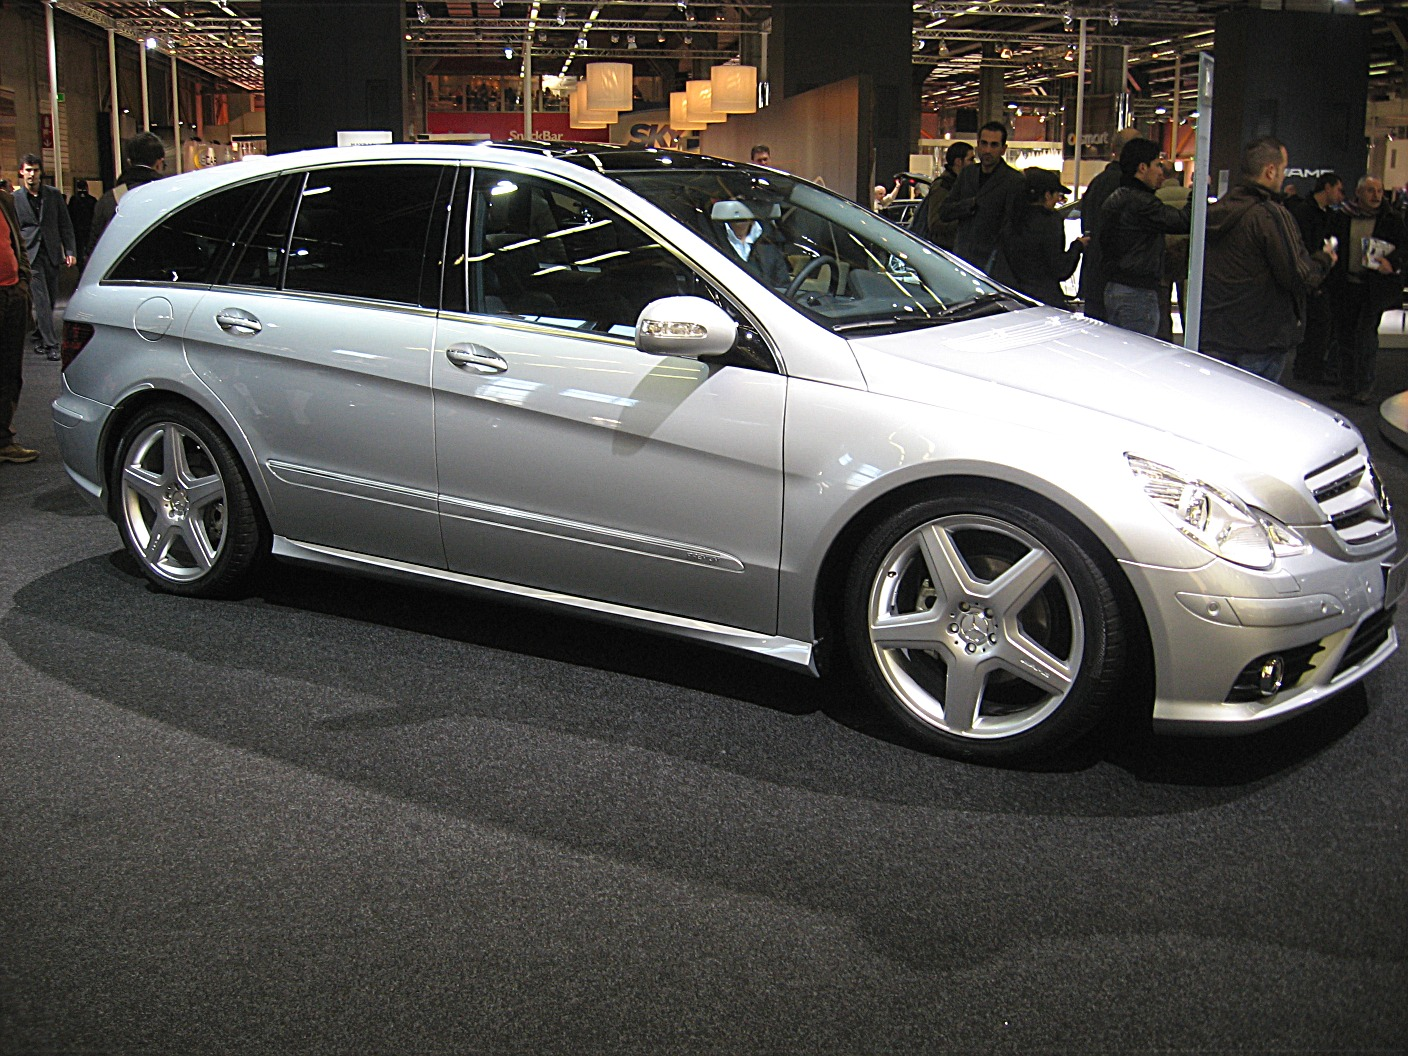 Best Car Models Amp All About Cars Mercedes Benz 2012 R Class